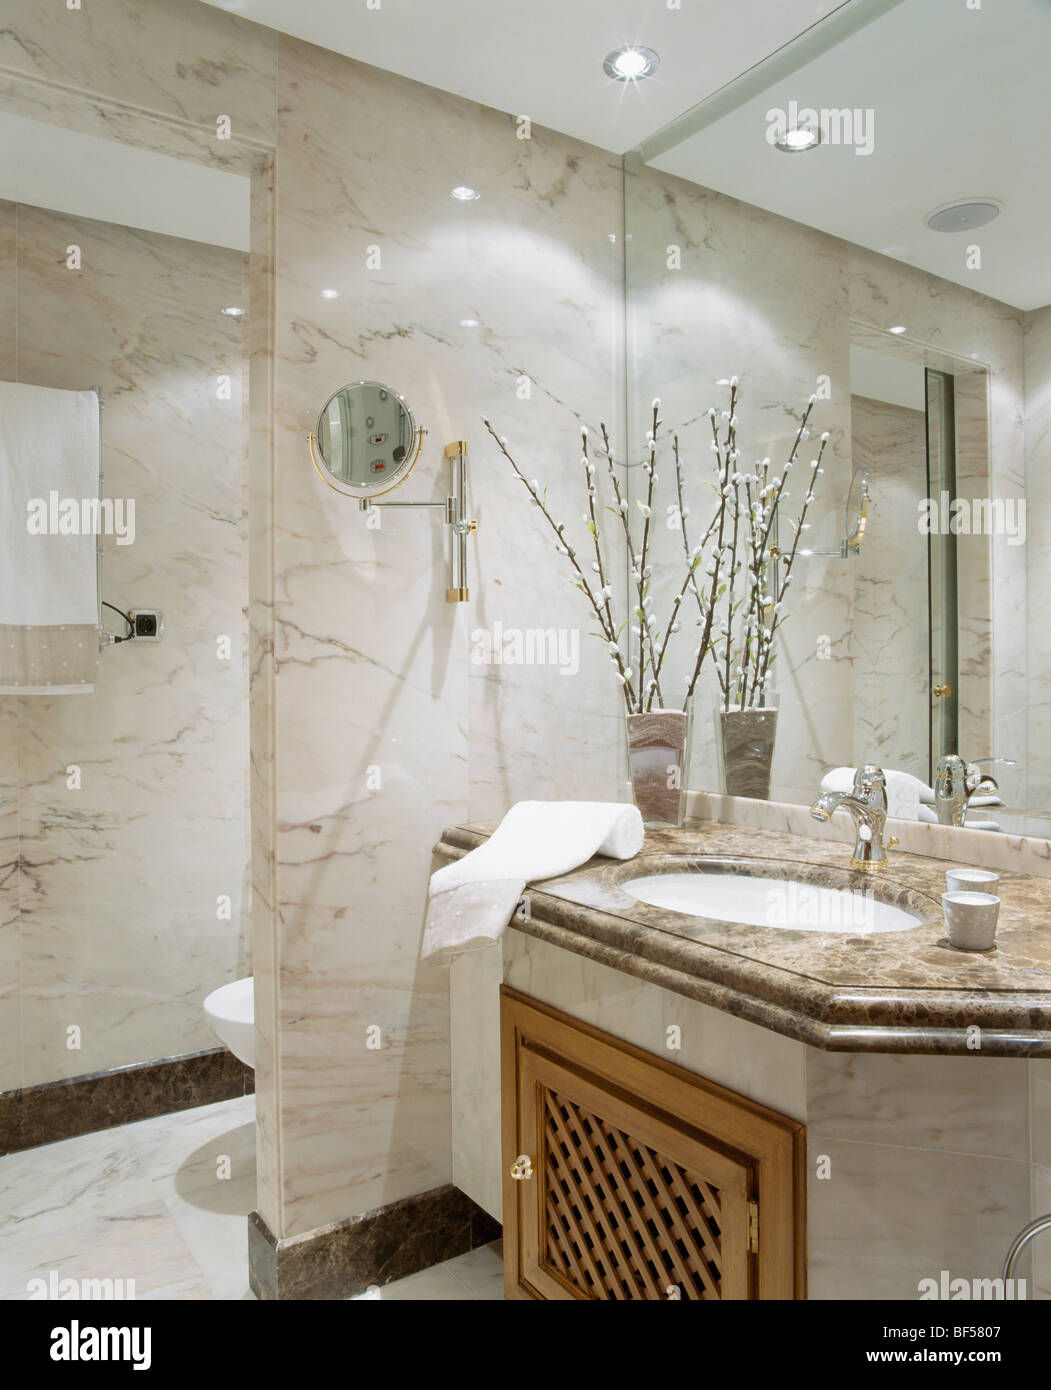 Mirrored Wall Above Basin In Vanity Unit In Modern Marble Bathroom Stock Photo Alamy